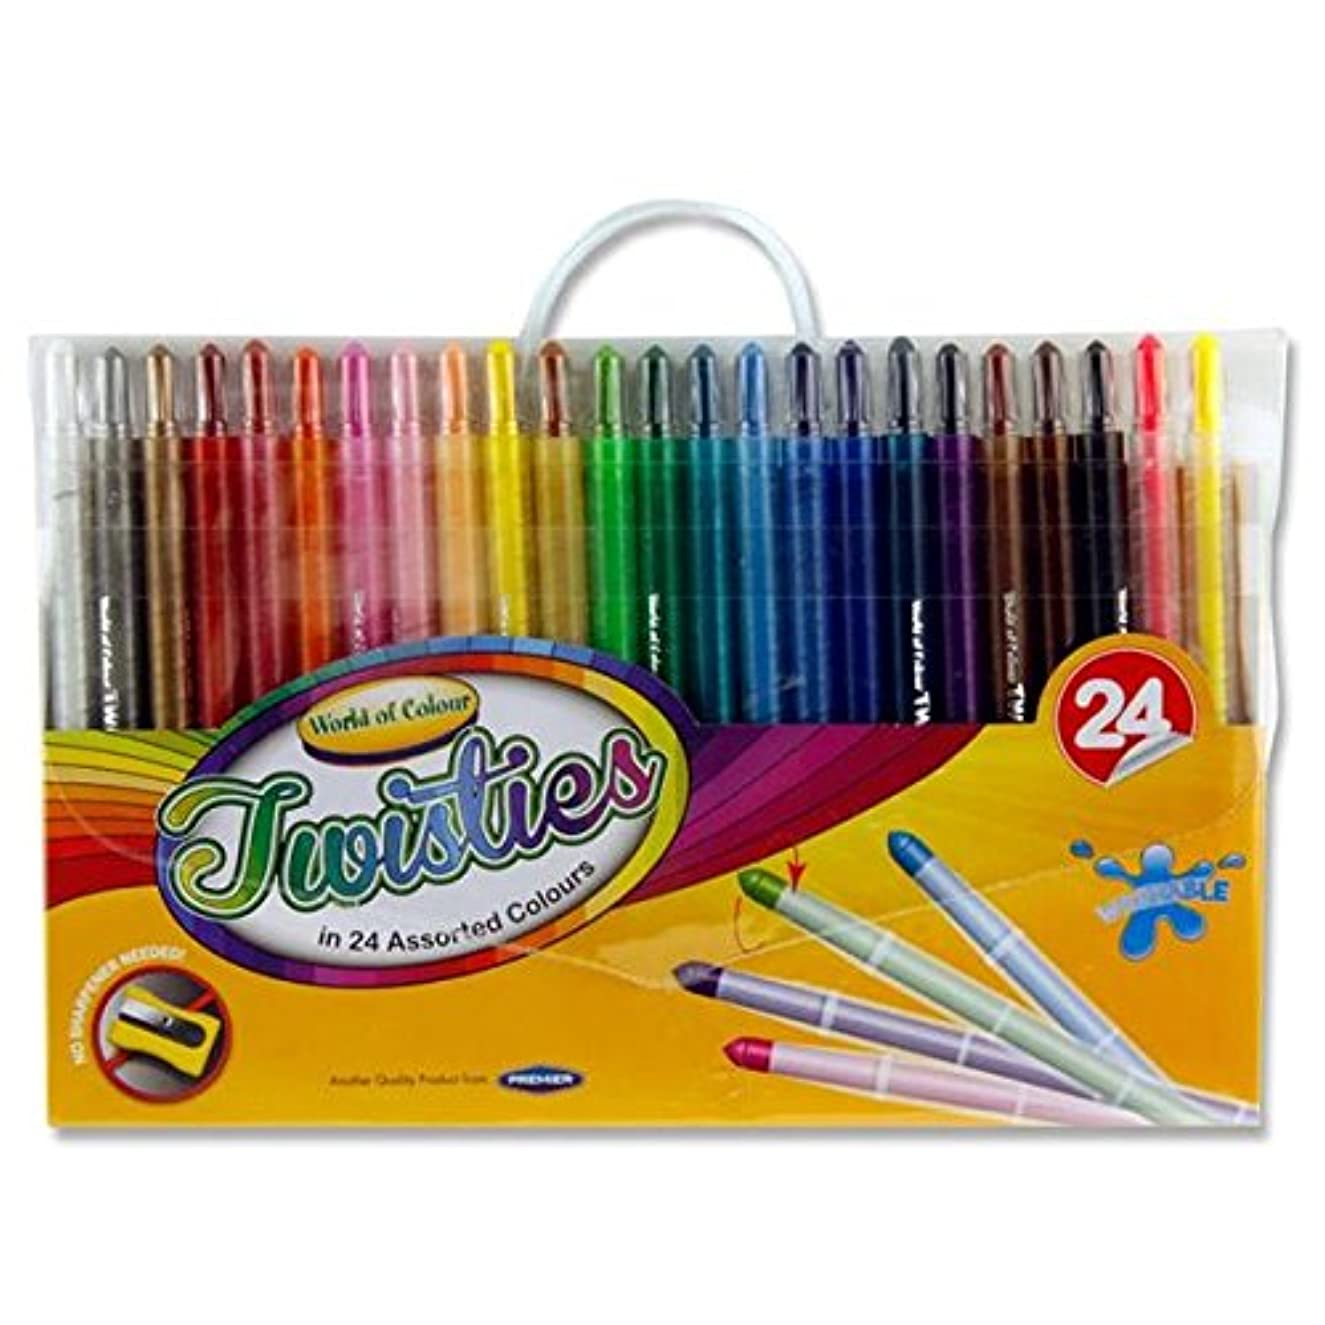 Premier Stationery World of Colour Twisties Crayons. Pack of 24 Assorted Vibrant Colours. No shapening Required - just Twist and Start Colouring.